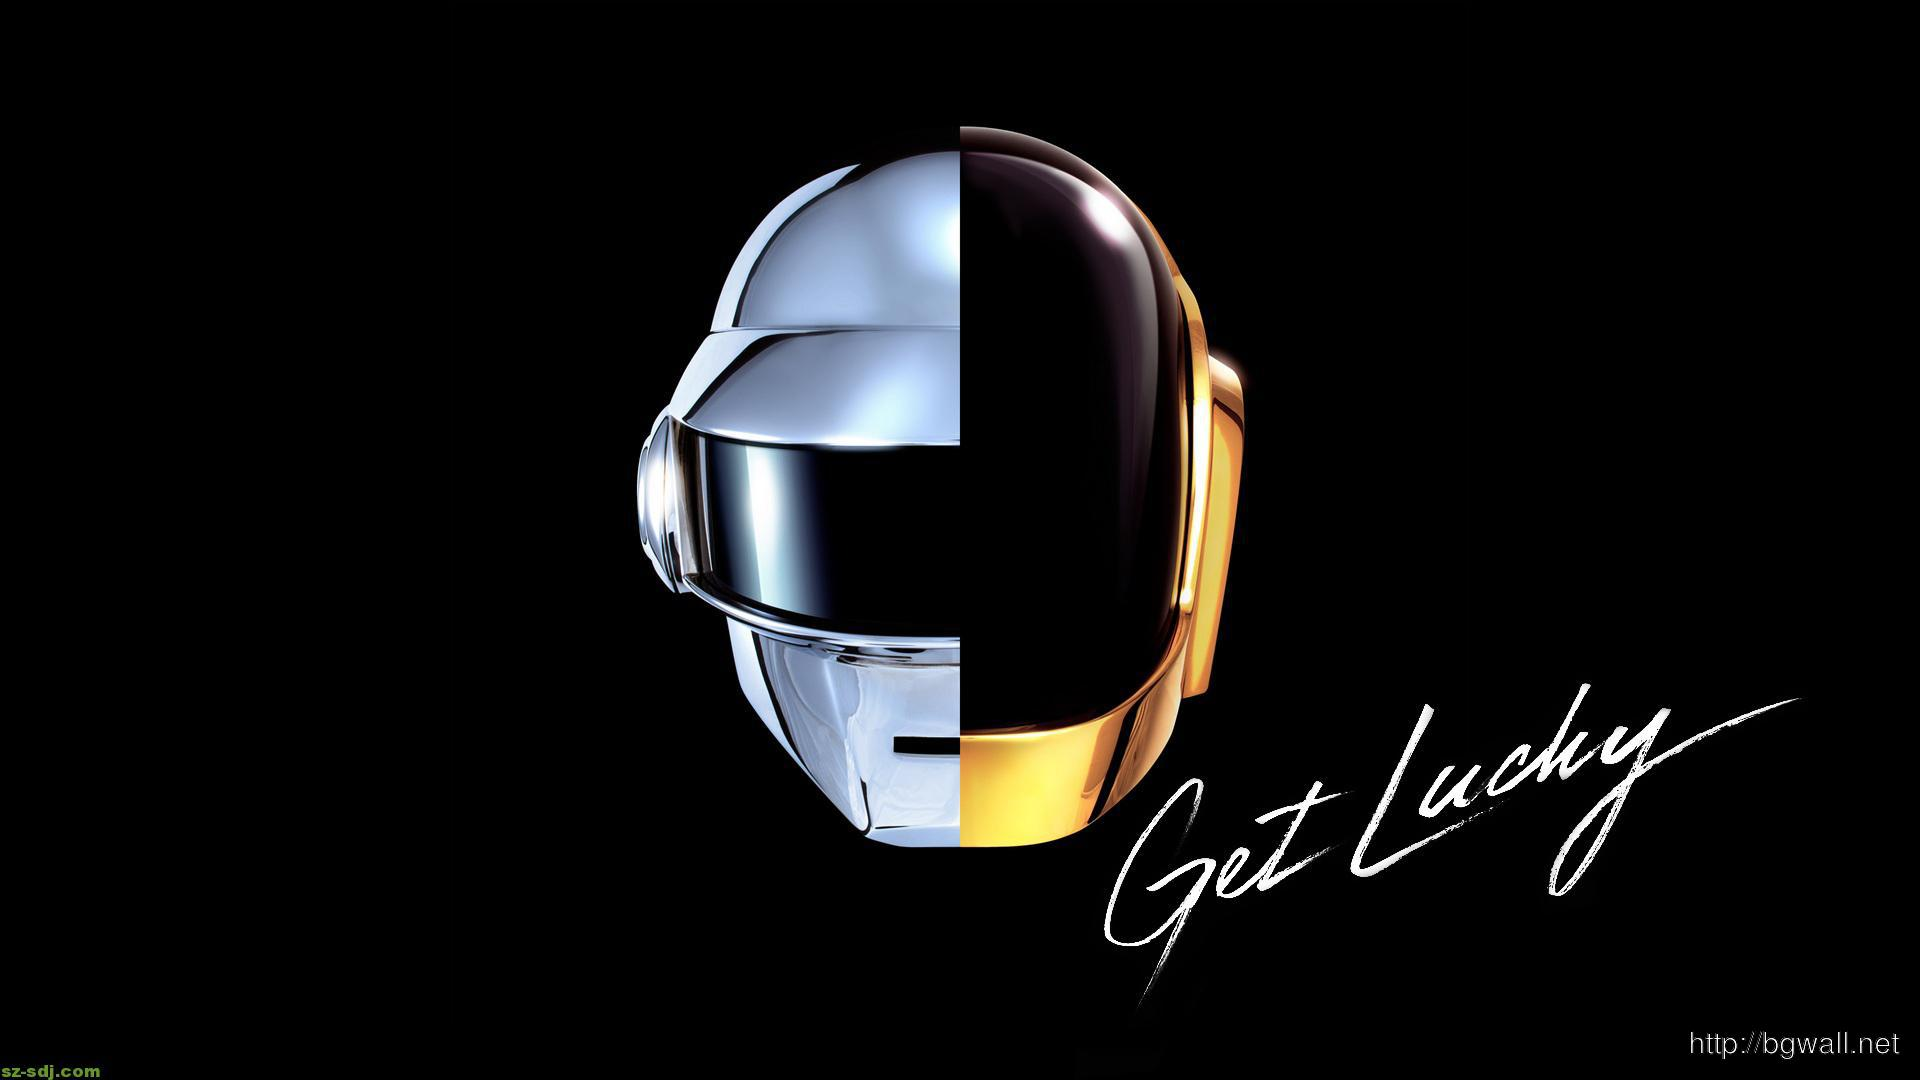 Daft Punk Wallpaper Image